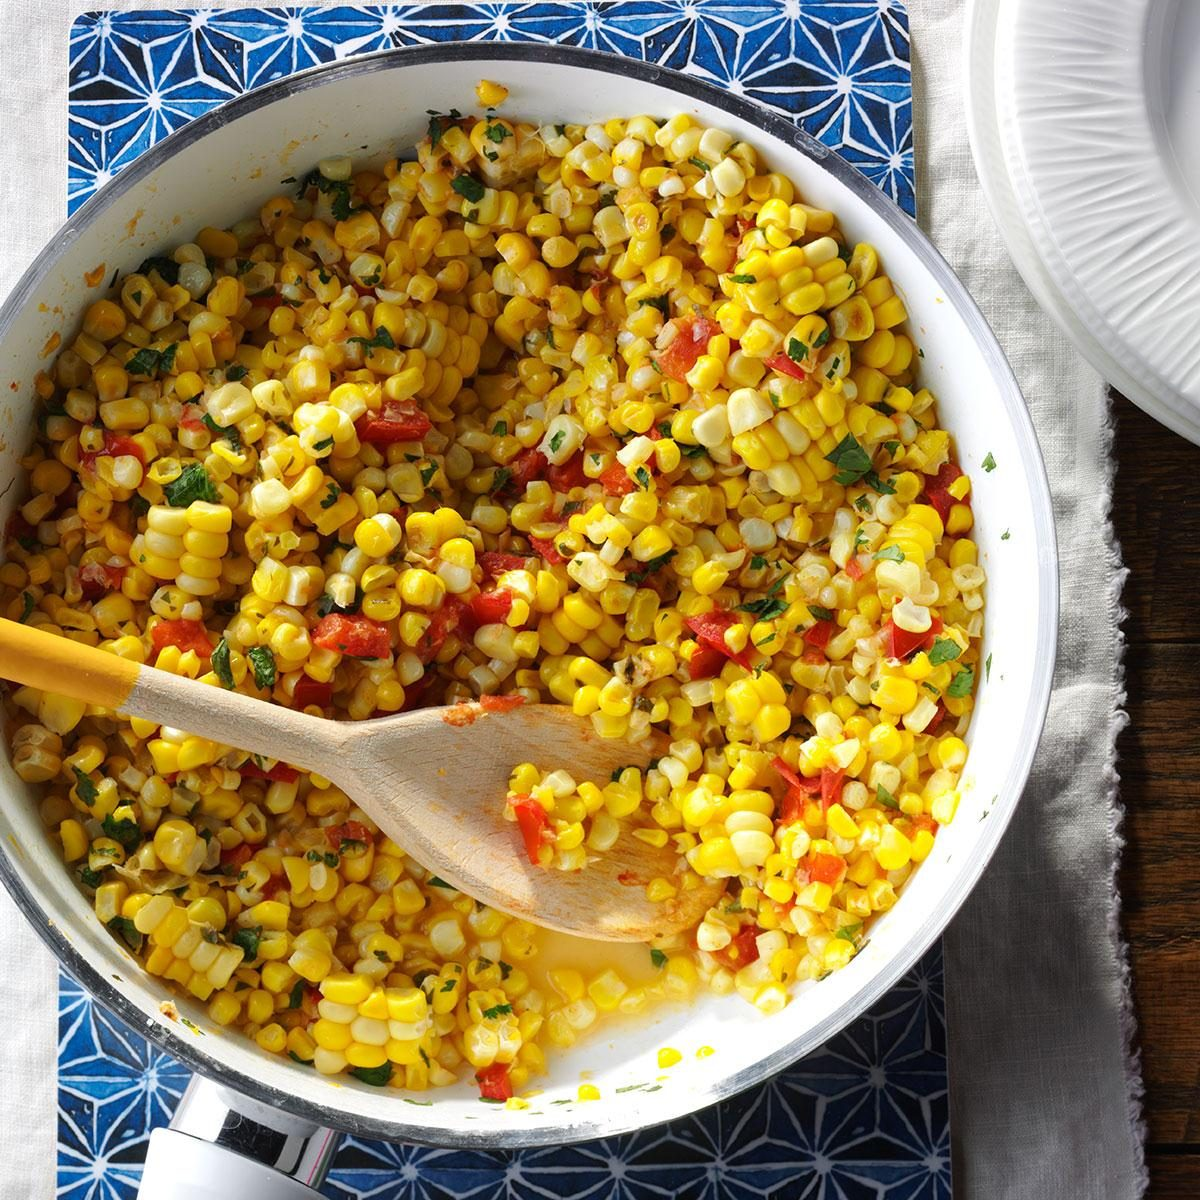 Inspired by: California Pizza Kitchen Mexican Street Corn